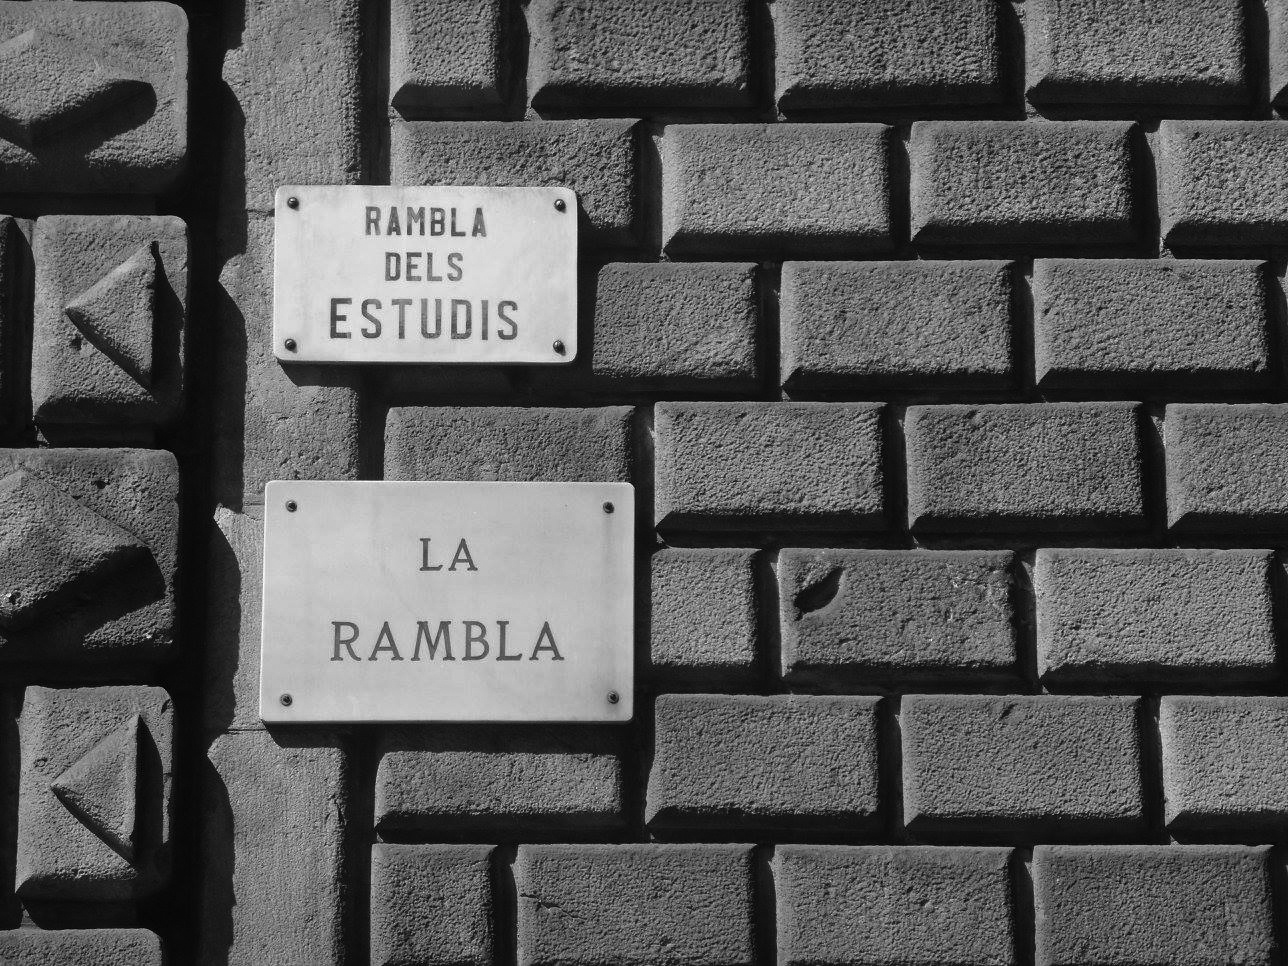 The picturesque La Rambla. A great place to start a photographic tour.